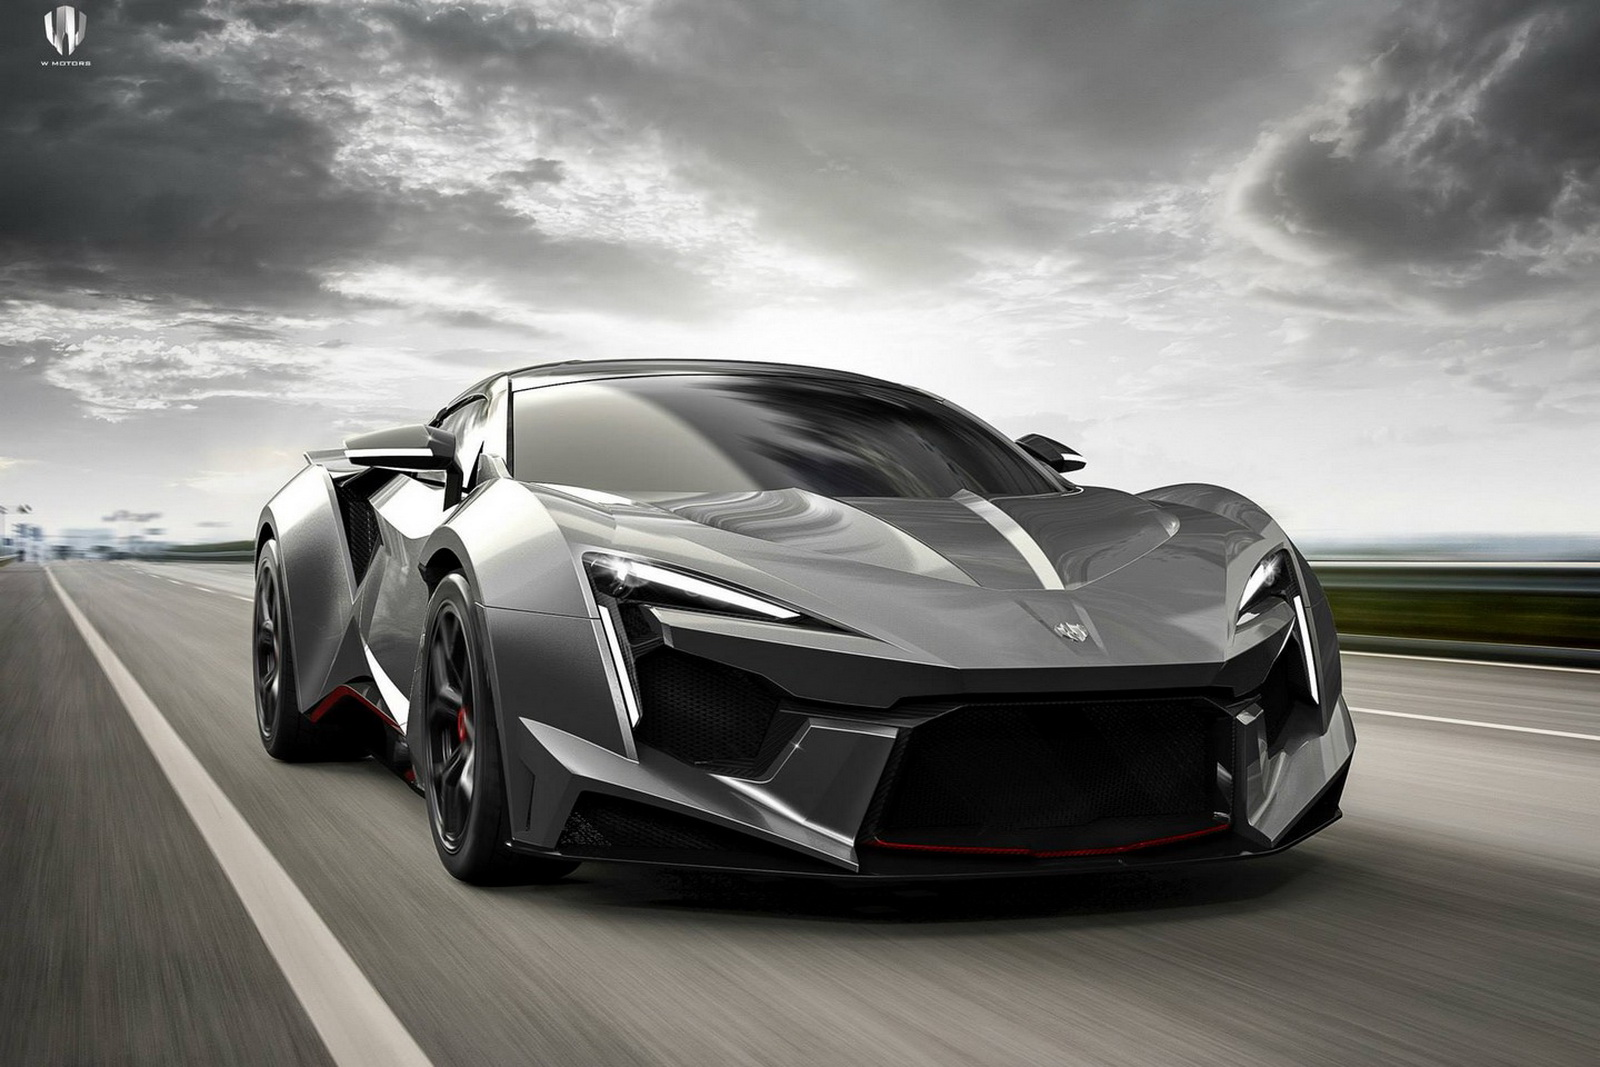 Toyota Of Plano >> New Fenyr Supersport Revealed At Dubai, Delivers Over 900hp & 248mph | Carscoops